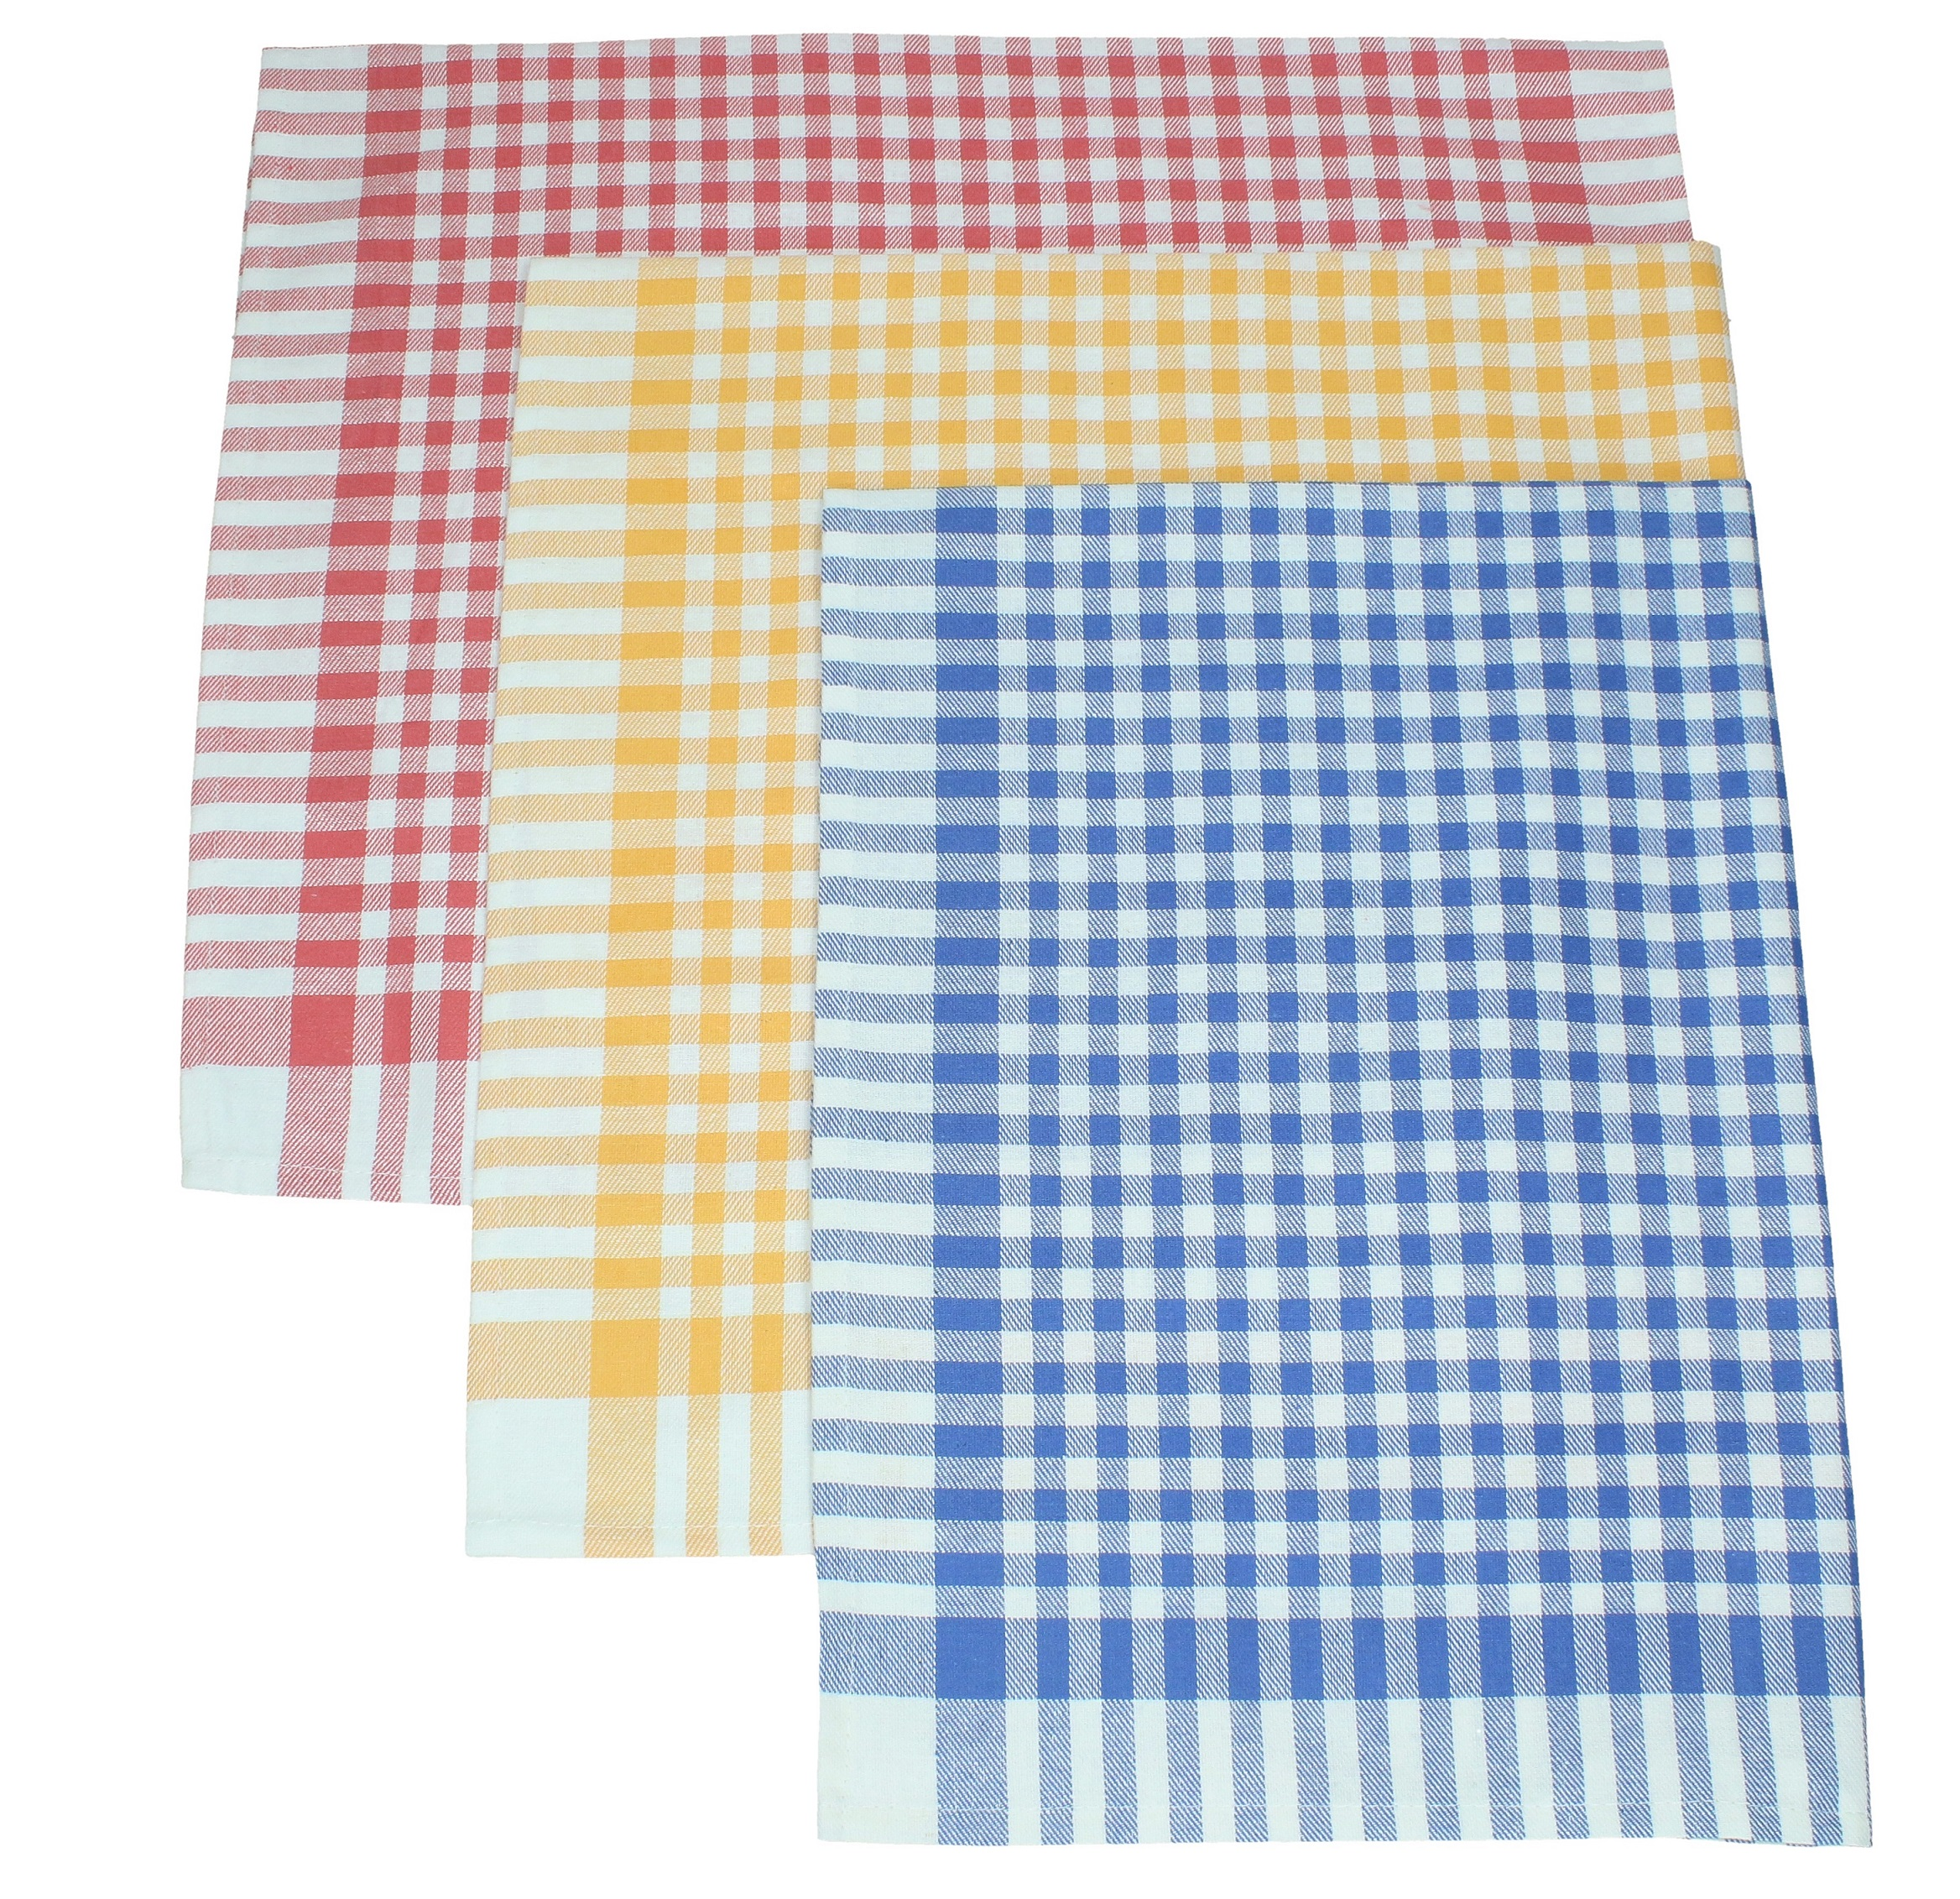 3 Piece Set Tea Towels Squares colour yellow blue and red size